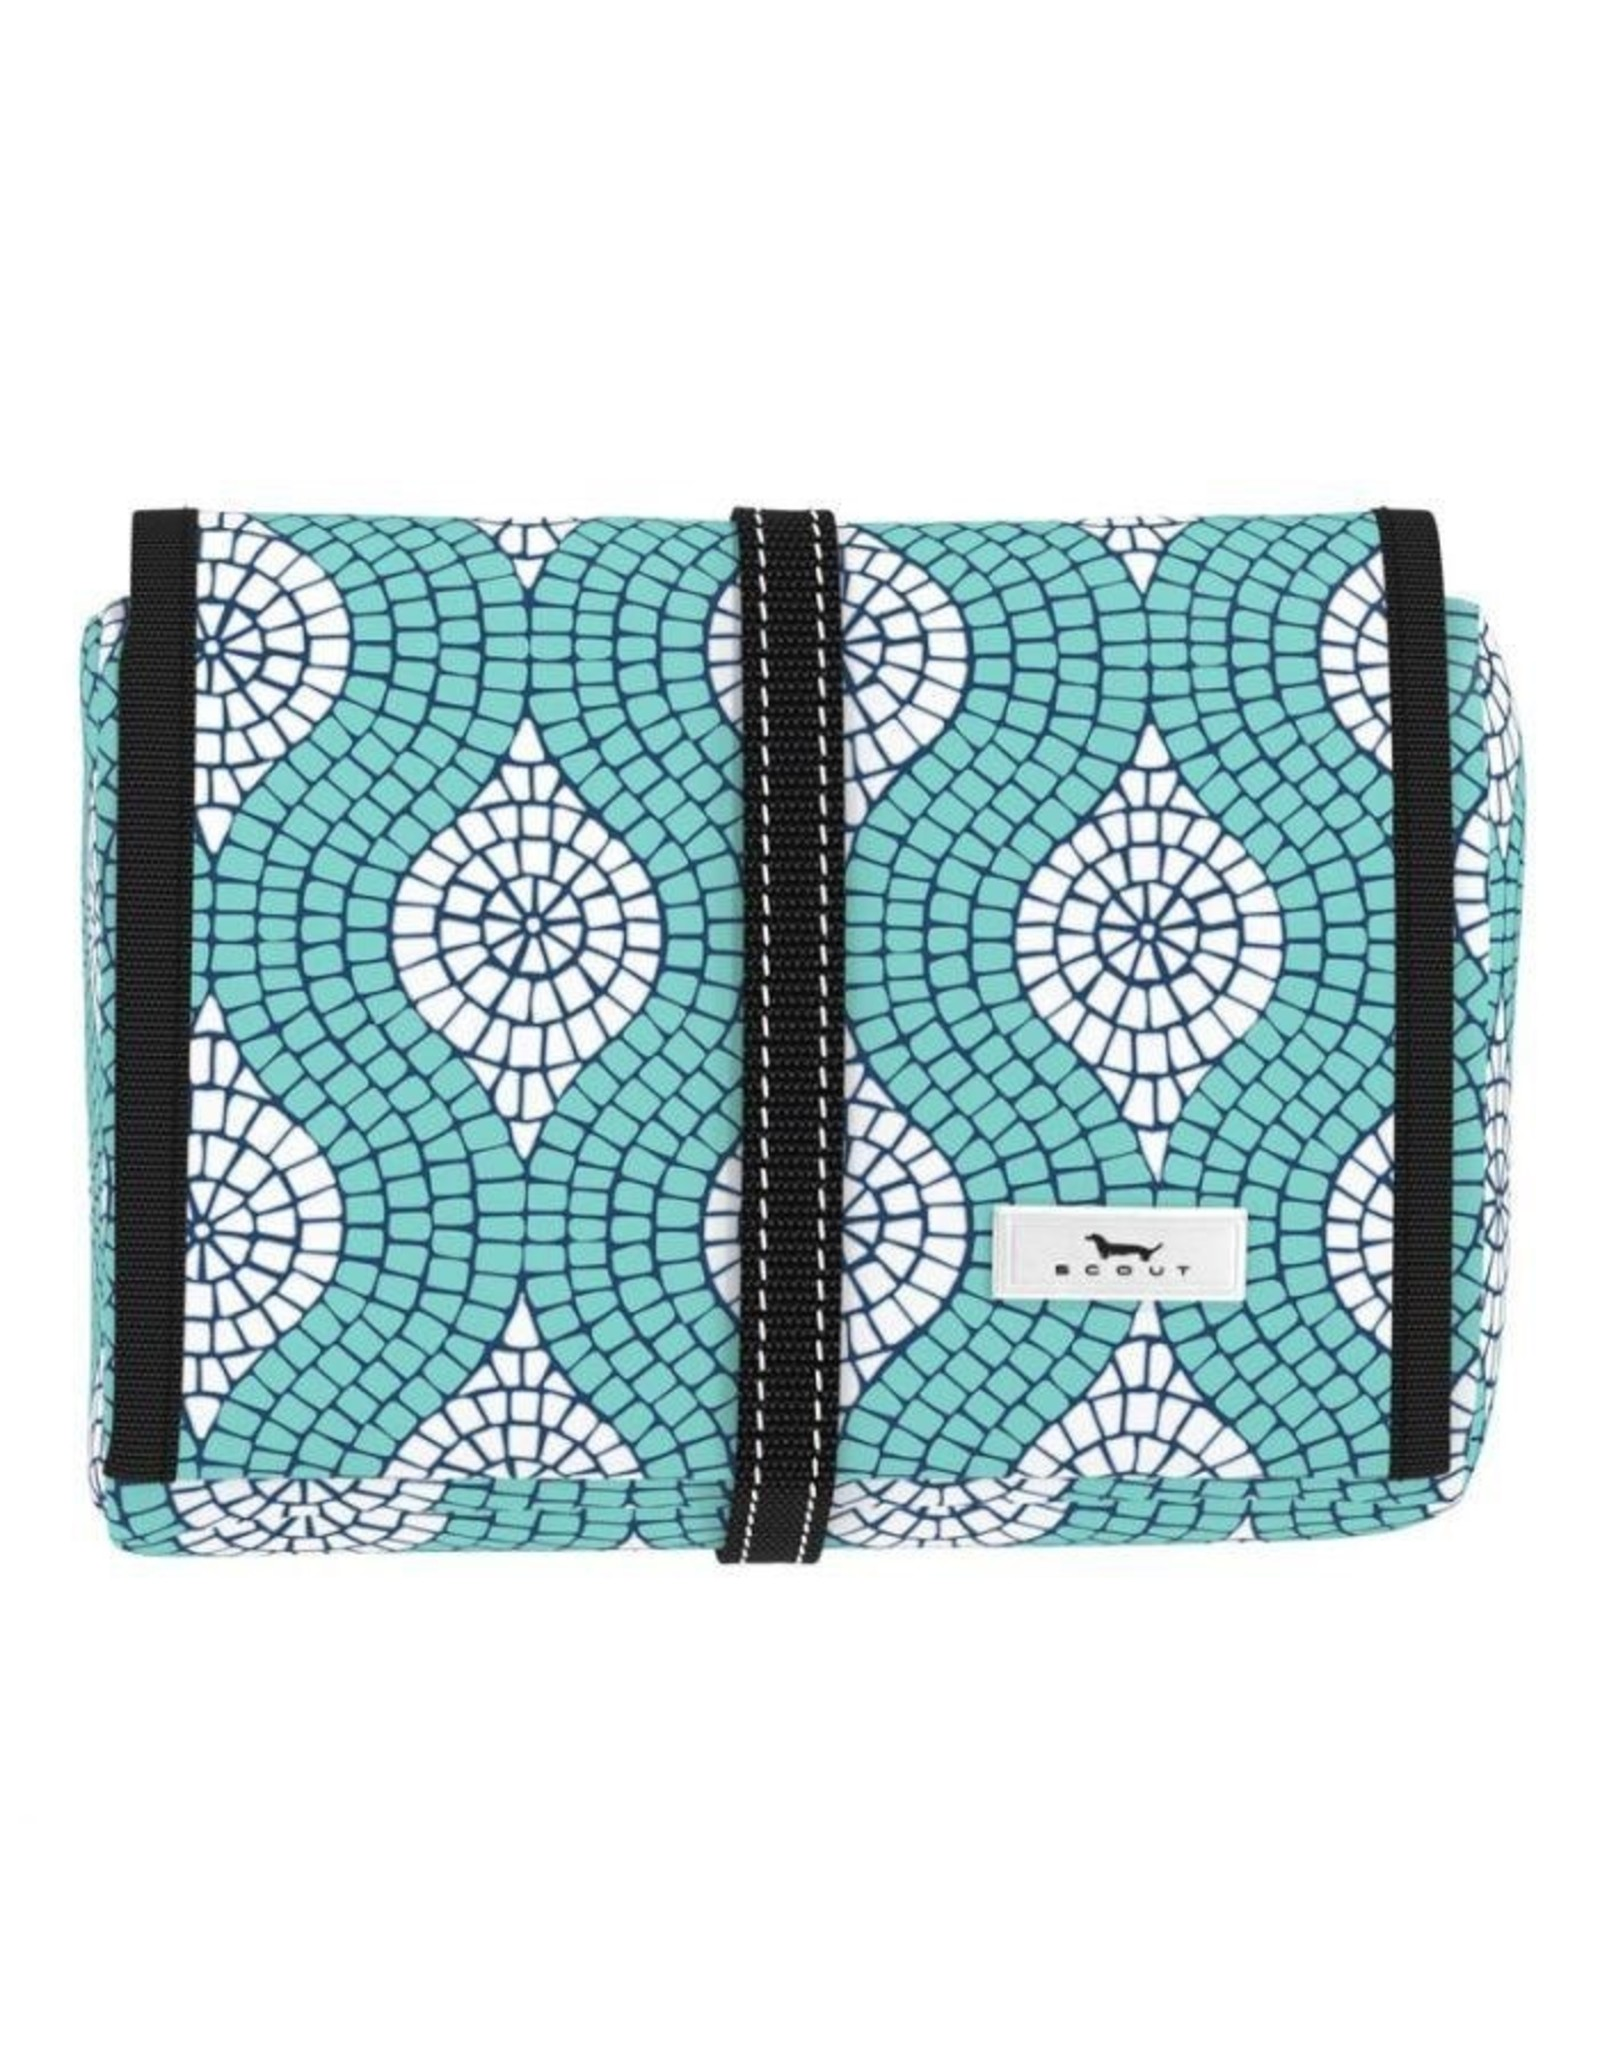 Scout Bags Beauty Burrito Hanging Toiletry Bag Mosaic Aint So